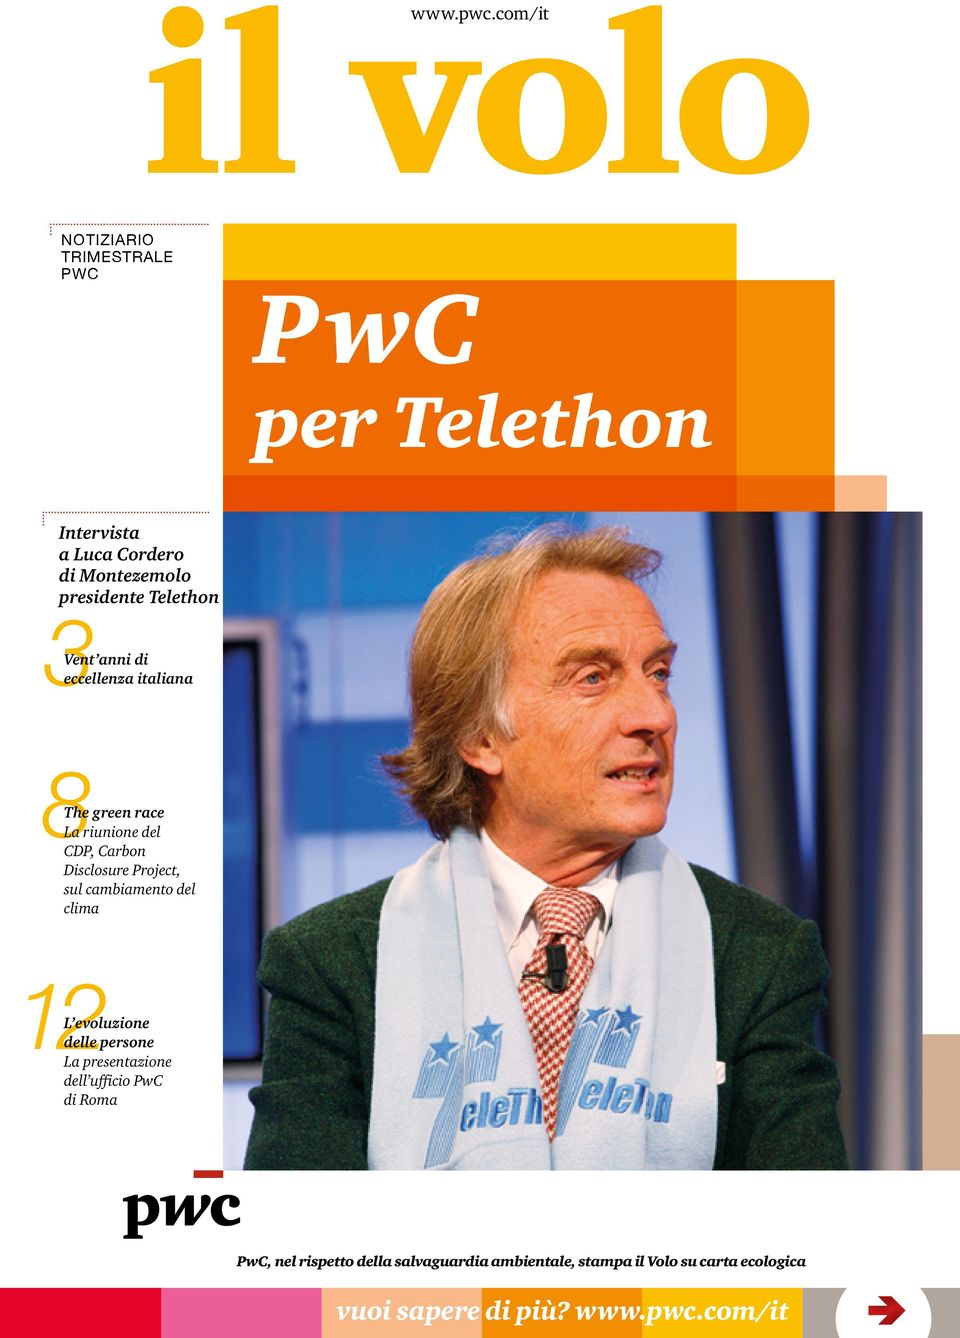 Telethon 3 Vent anni di eccellenza italiana 8The green race La riunione del CDP, Carbon Disclosure Project,